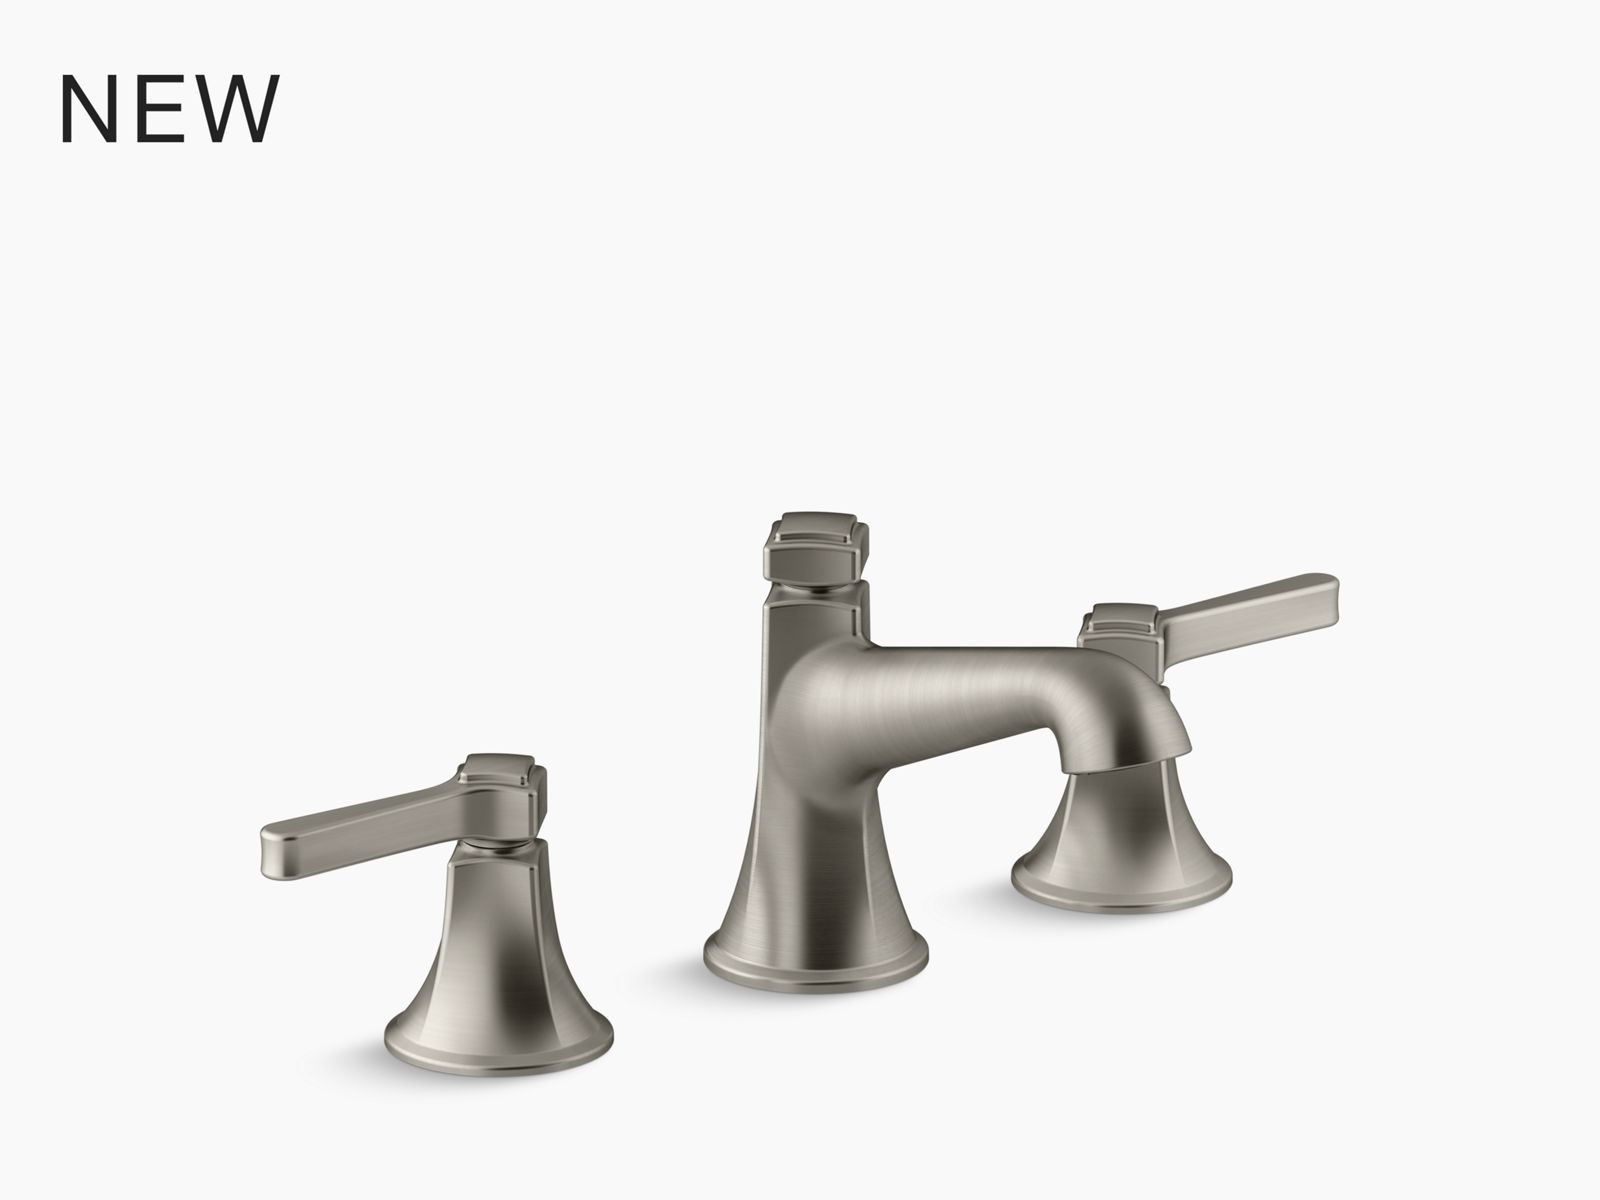 mistos 4 hole kitchen faucet with 11 pull out spout and soap lotion dispenser